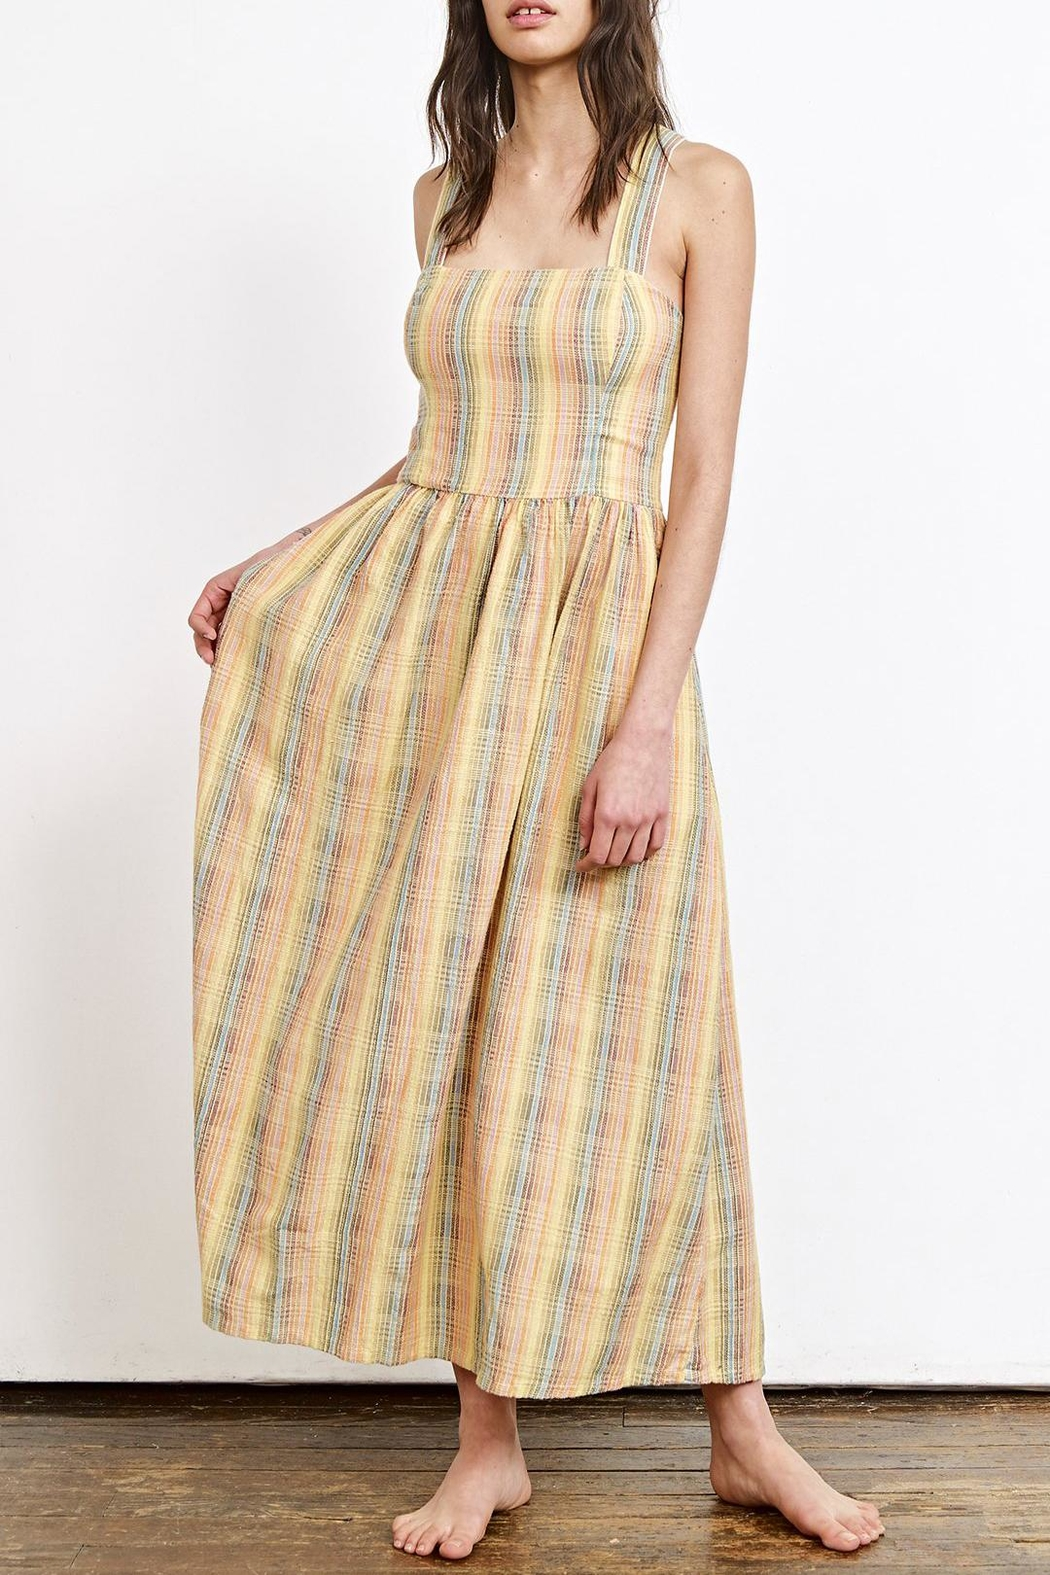 Ace & Jig Willa Striped Dress - Main Image